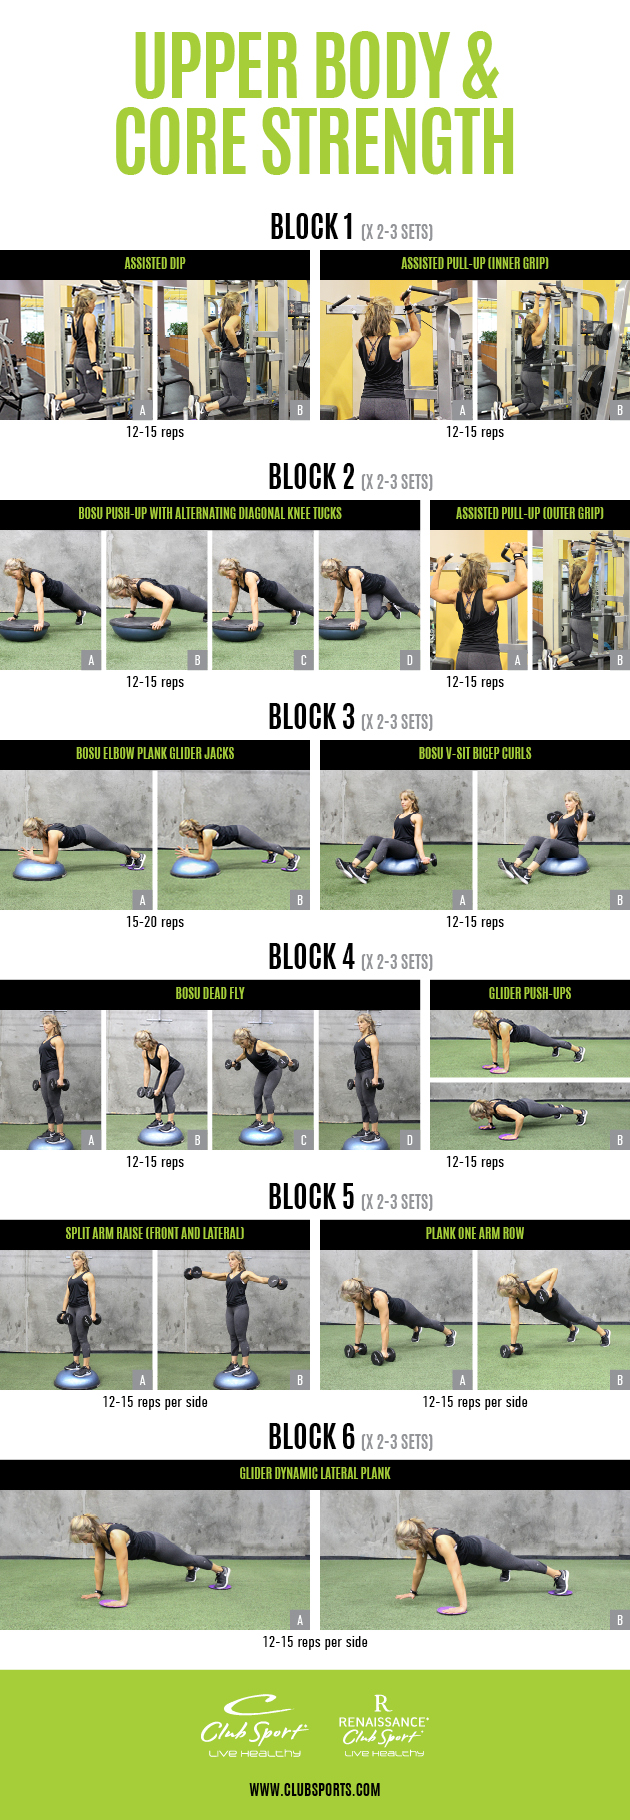 Upper Body and Core Strength - pinnable